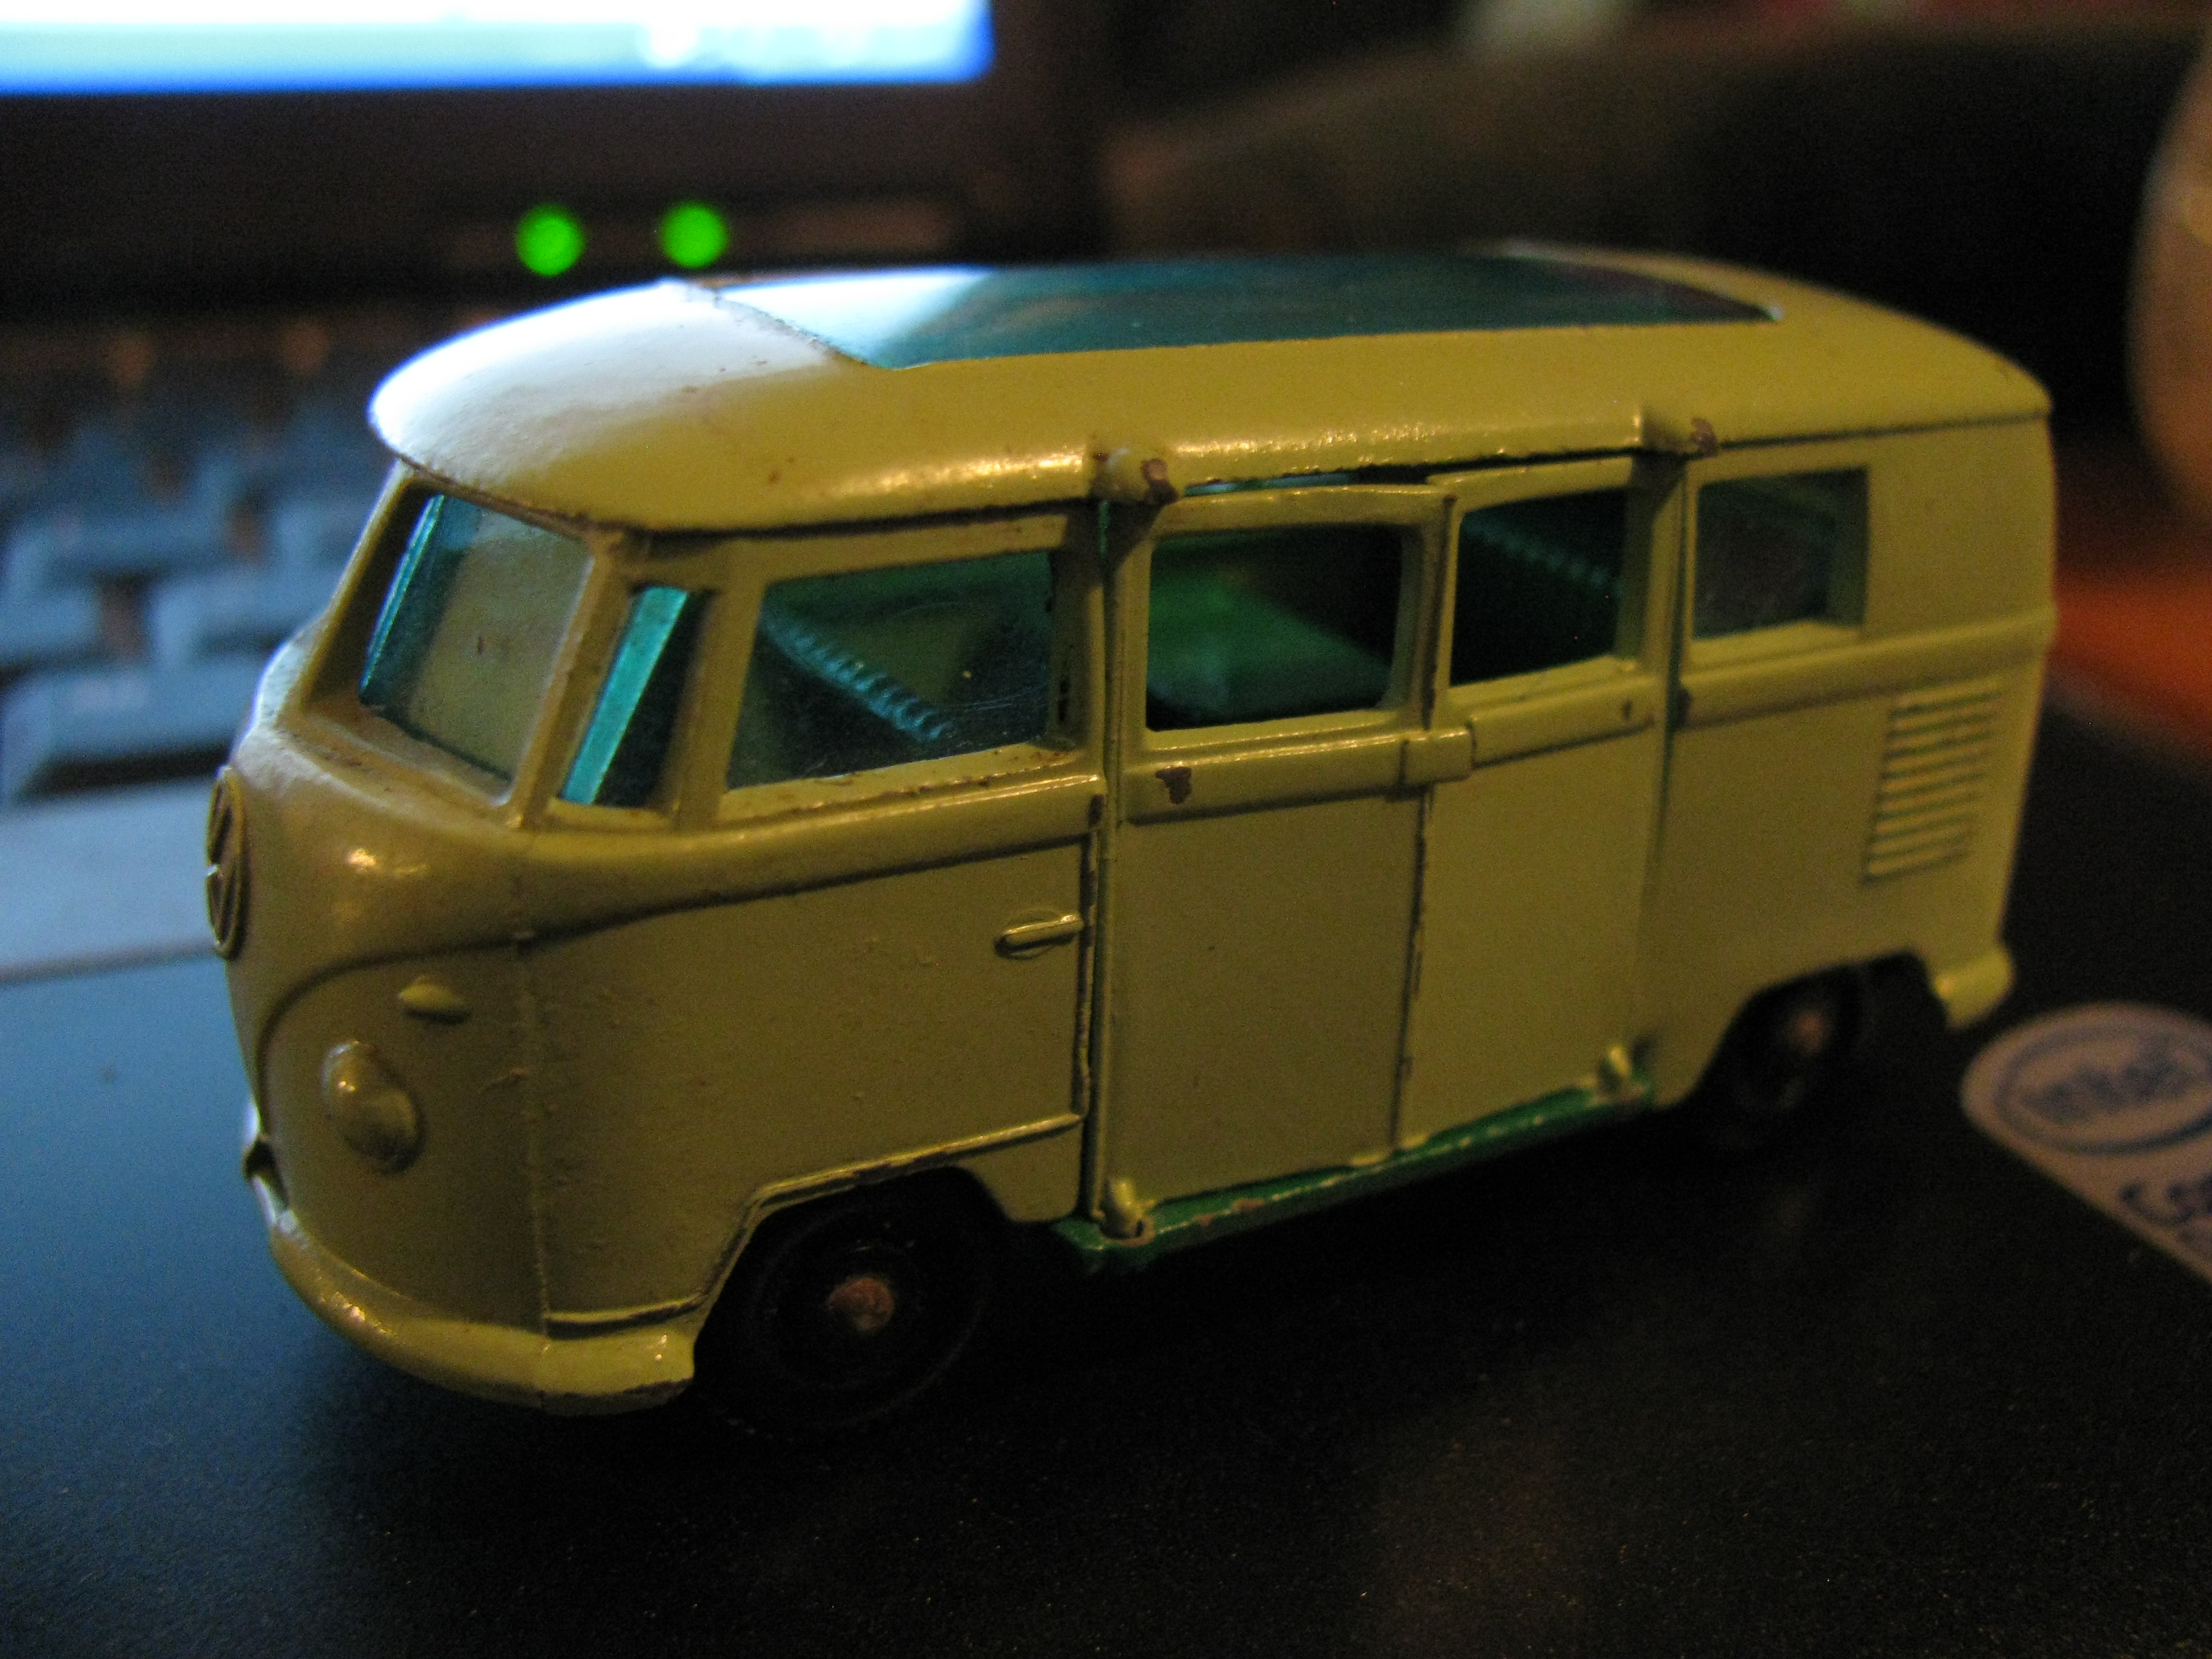 The bottom says it's a 1962 Volkswagen Caravette, made by Matchbox (Lindsey)